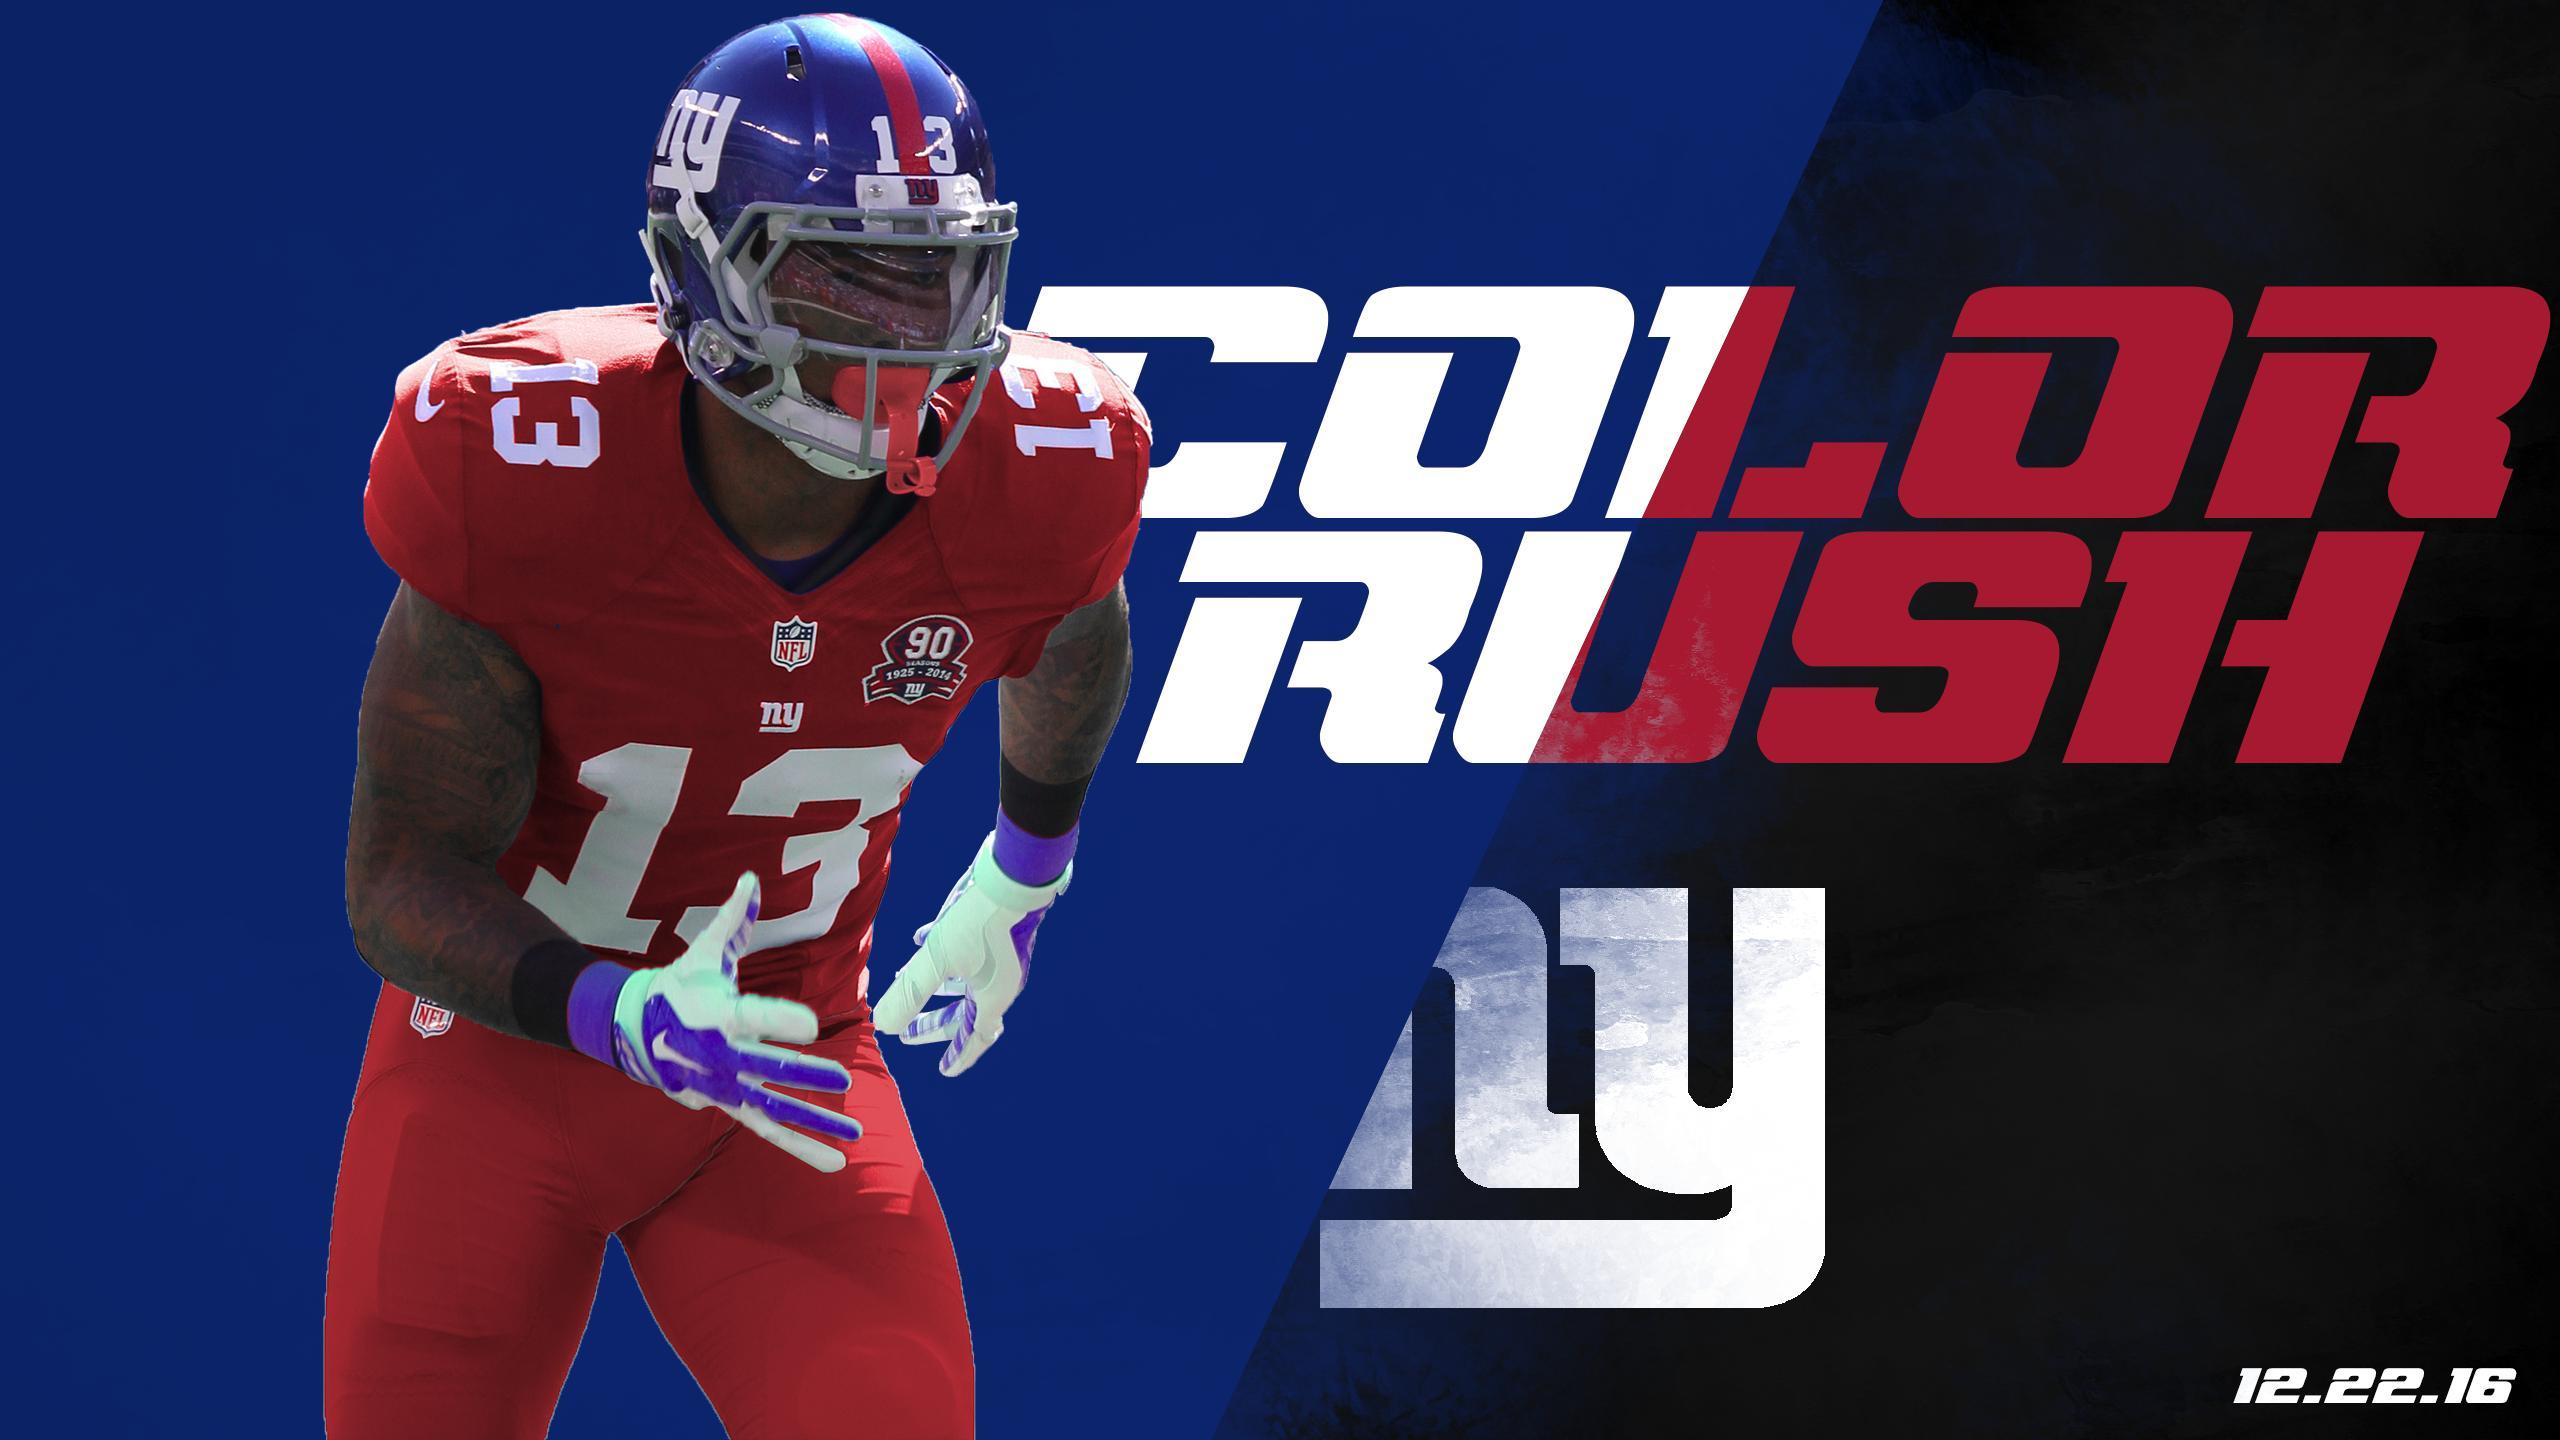 newest collection d8e81 76ae5 Color Rush Wallpapers - Wallpaper Cave